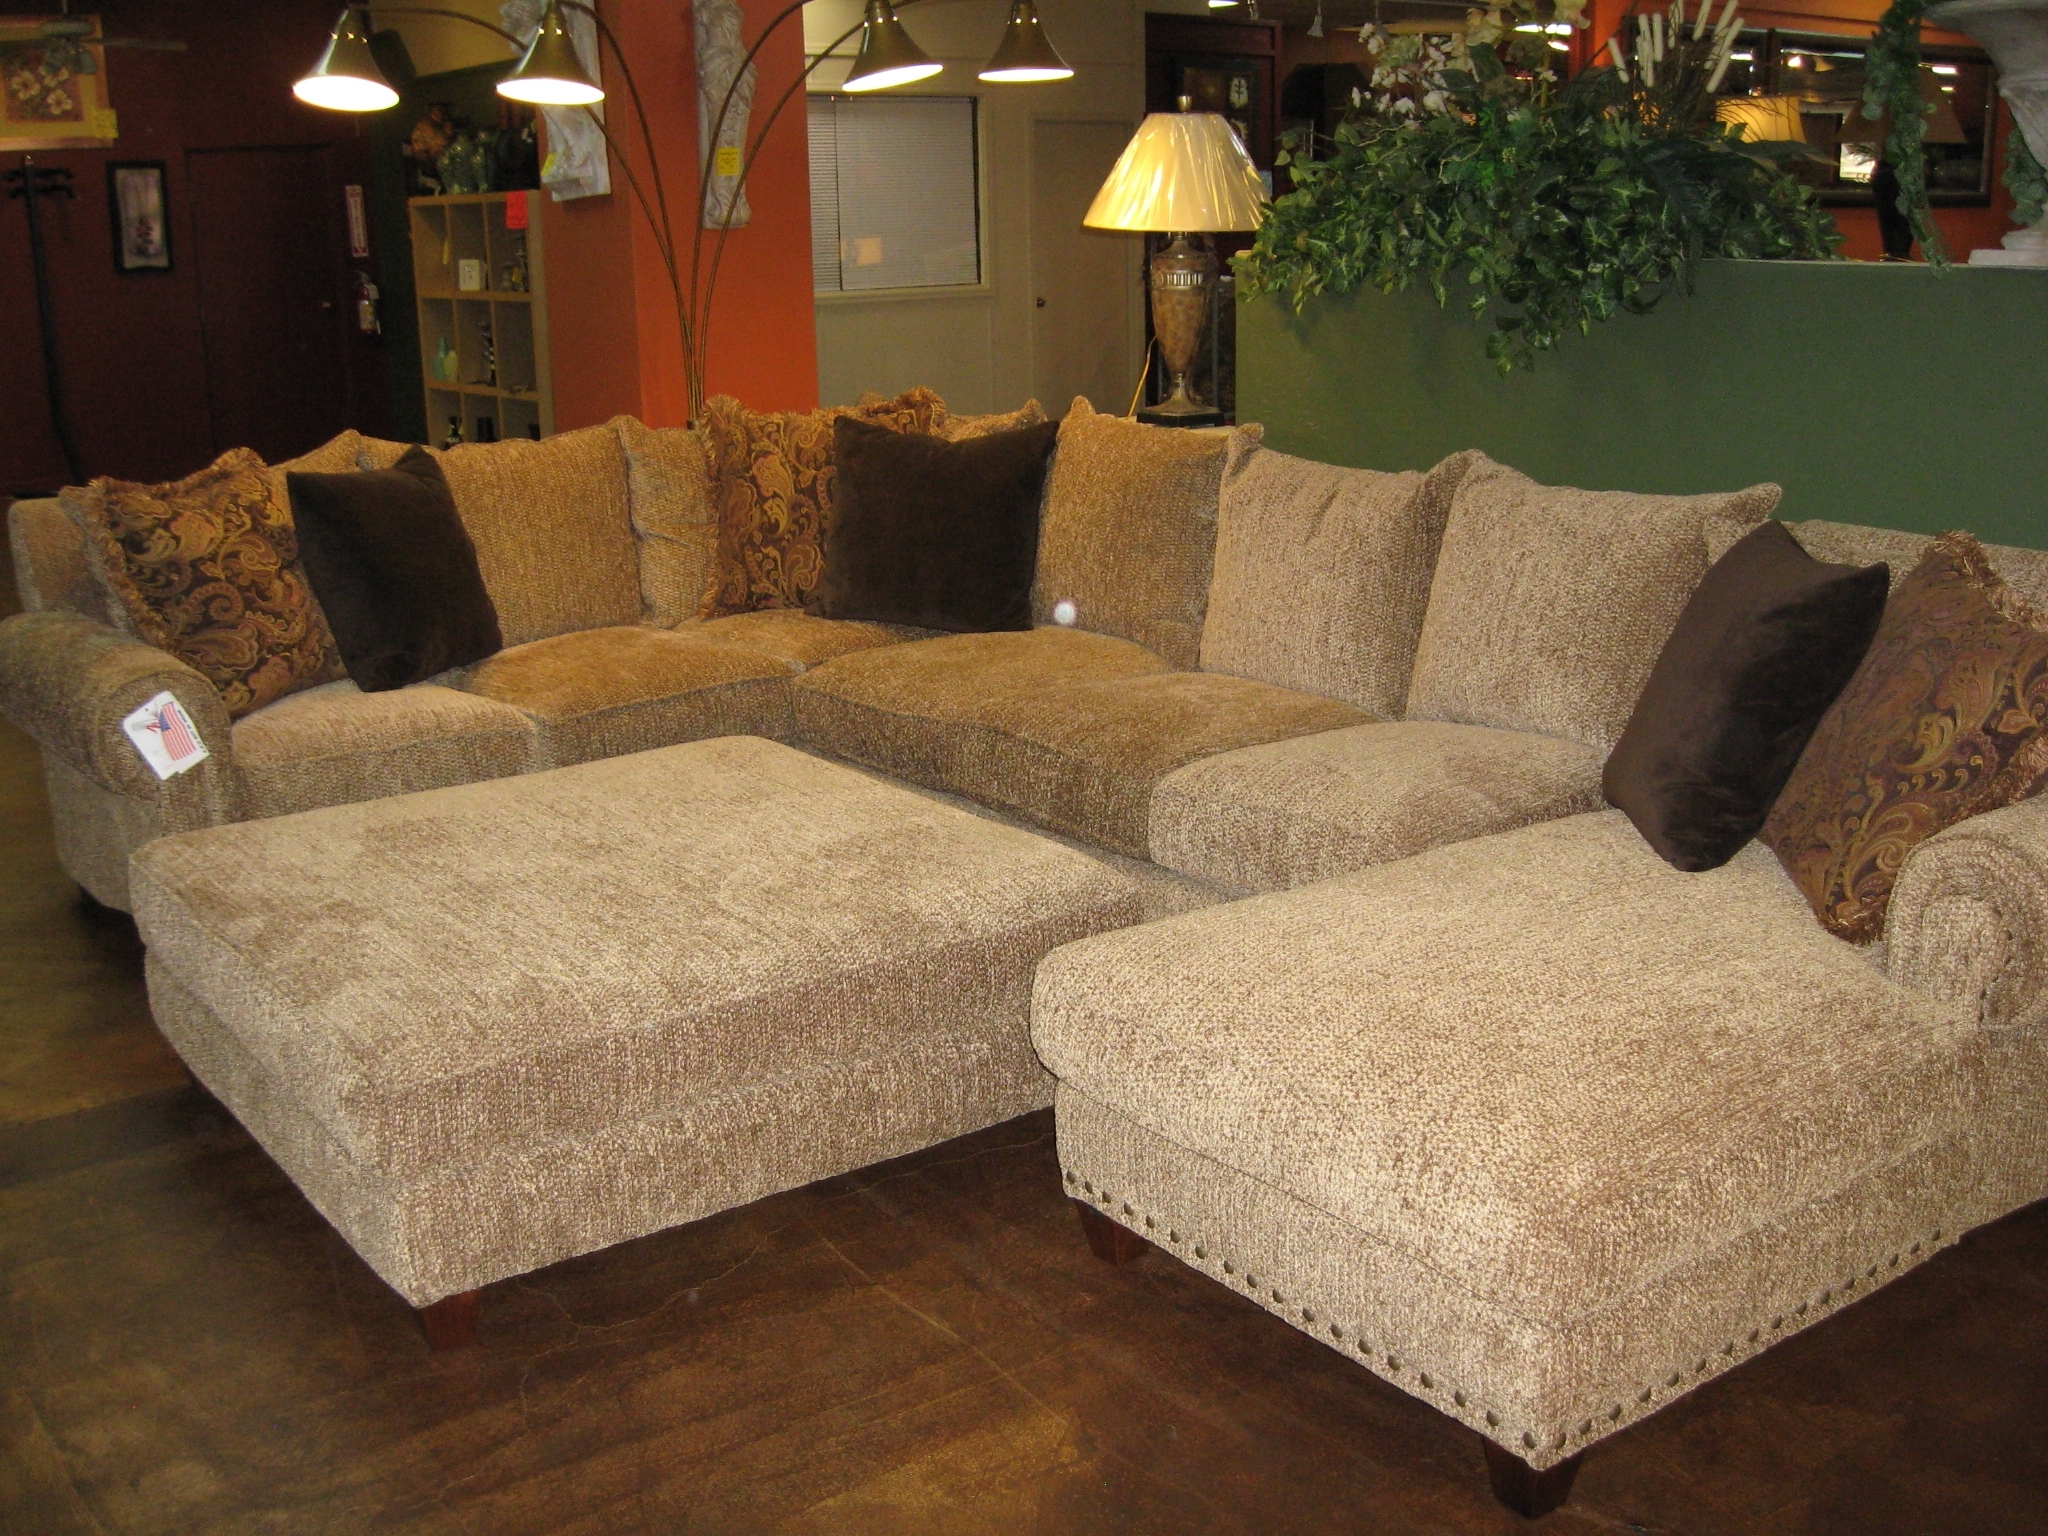 Couches With Large Ottoman Pertaining To Best And Newest Elegant Large Sectional Sofa With Ottoman 52 With Additional (View 8 of 20)